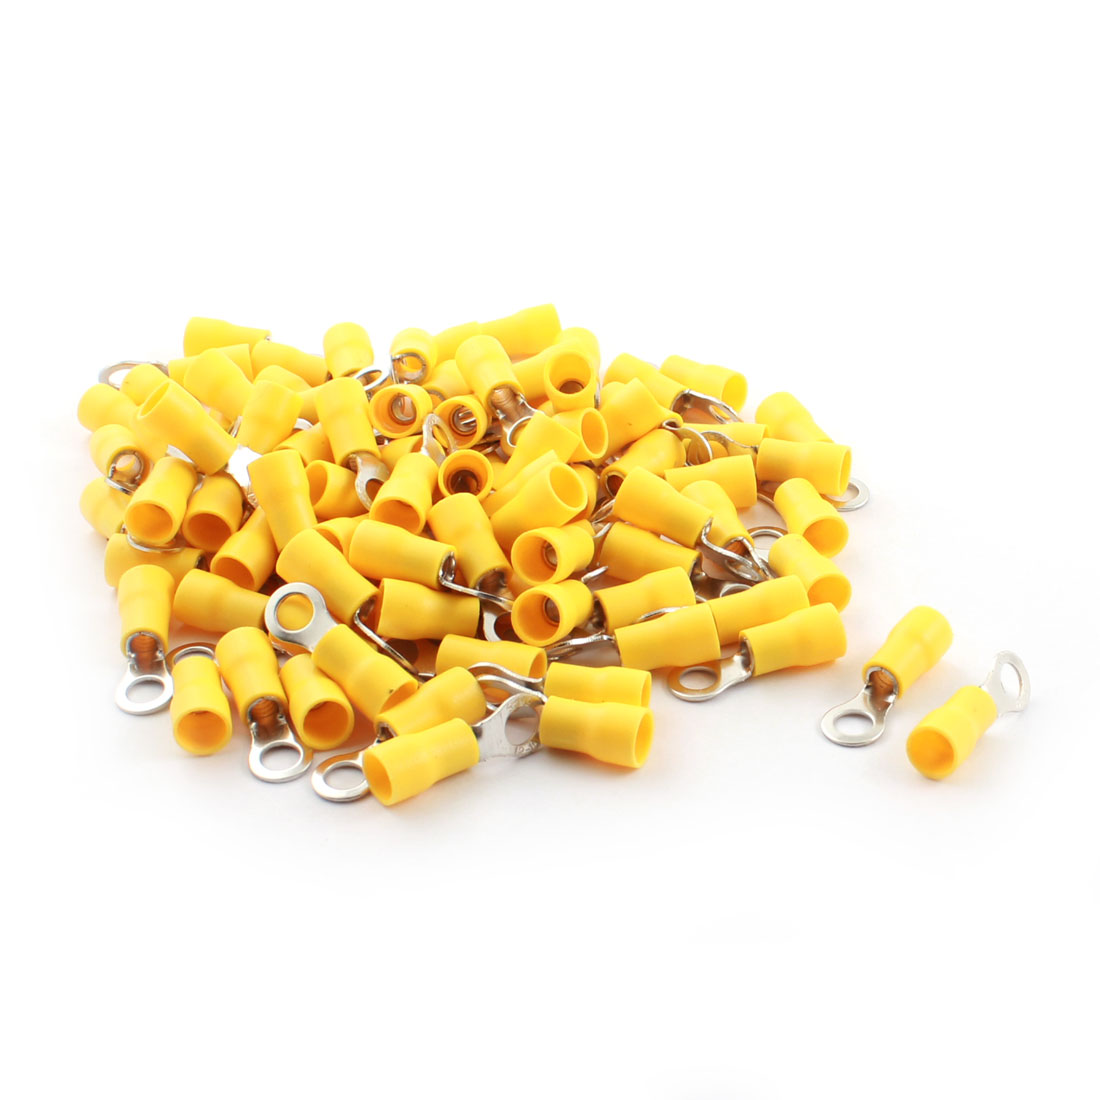 100 Pcs RV5.5-5 48A 5mm Dia Yellow Pre Insulated Electrical Ring Crimp Terminal Cable Connector 12-10AWG